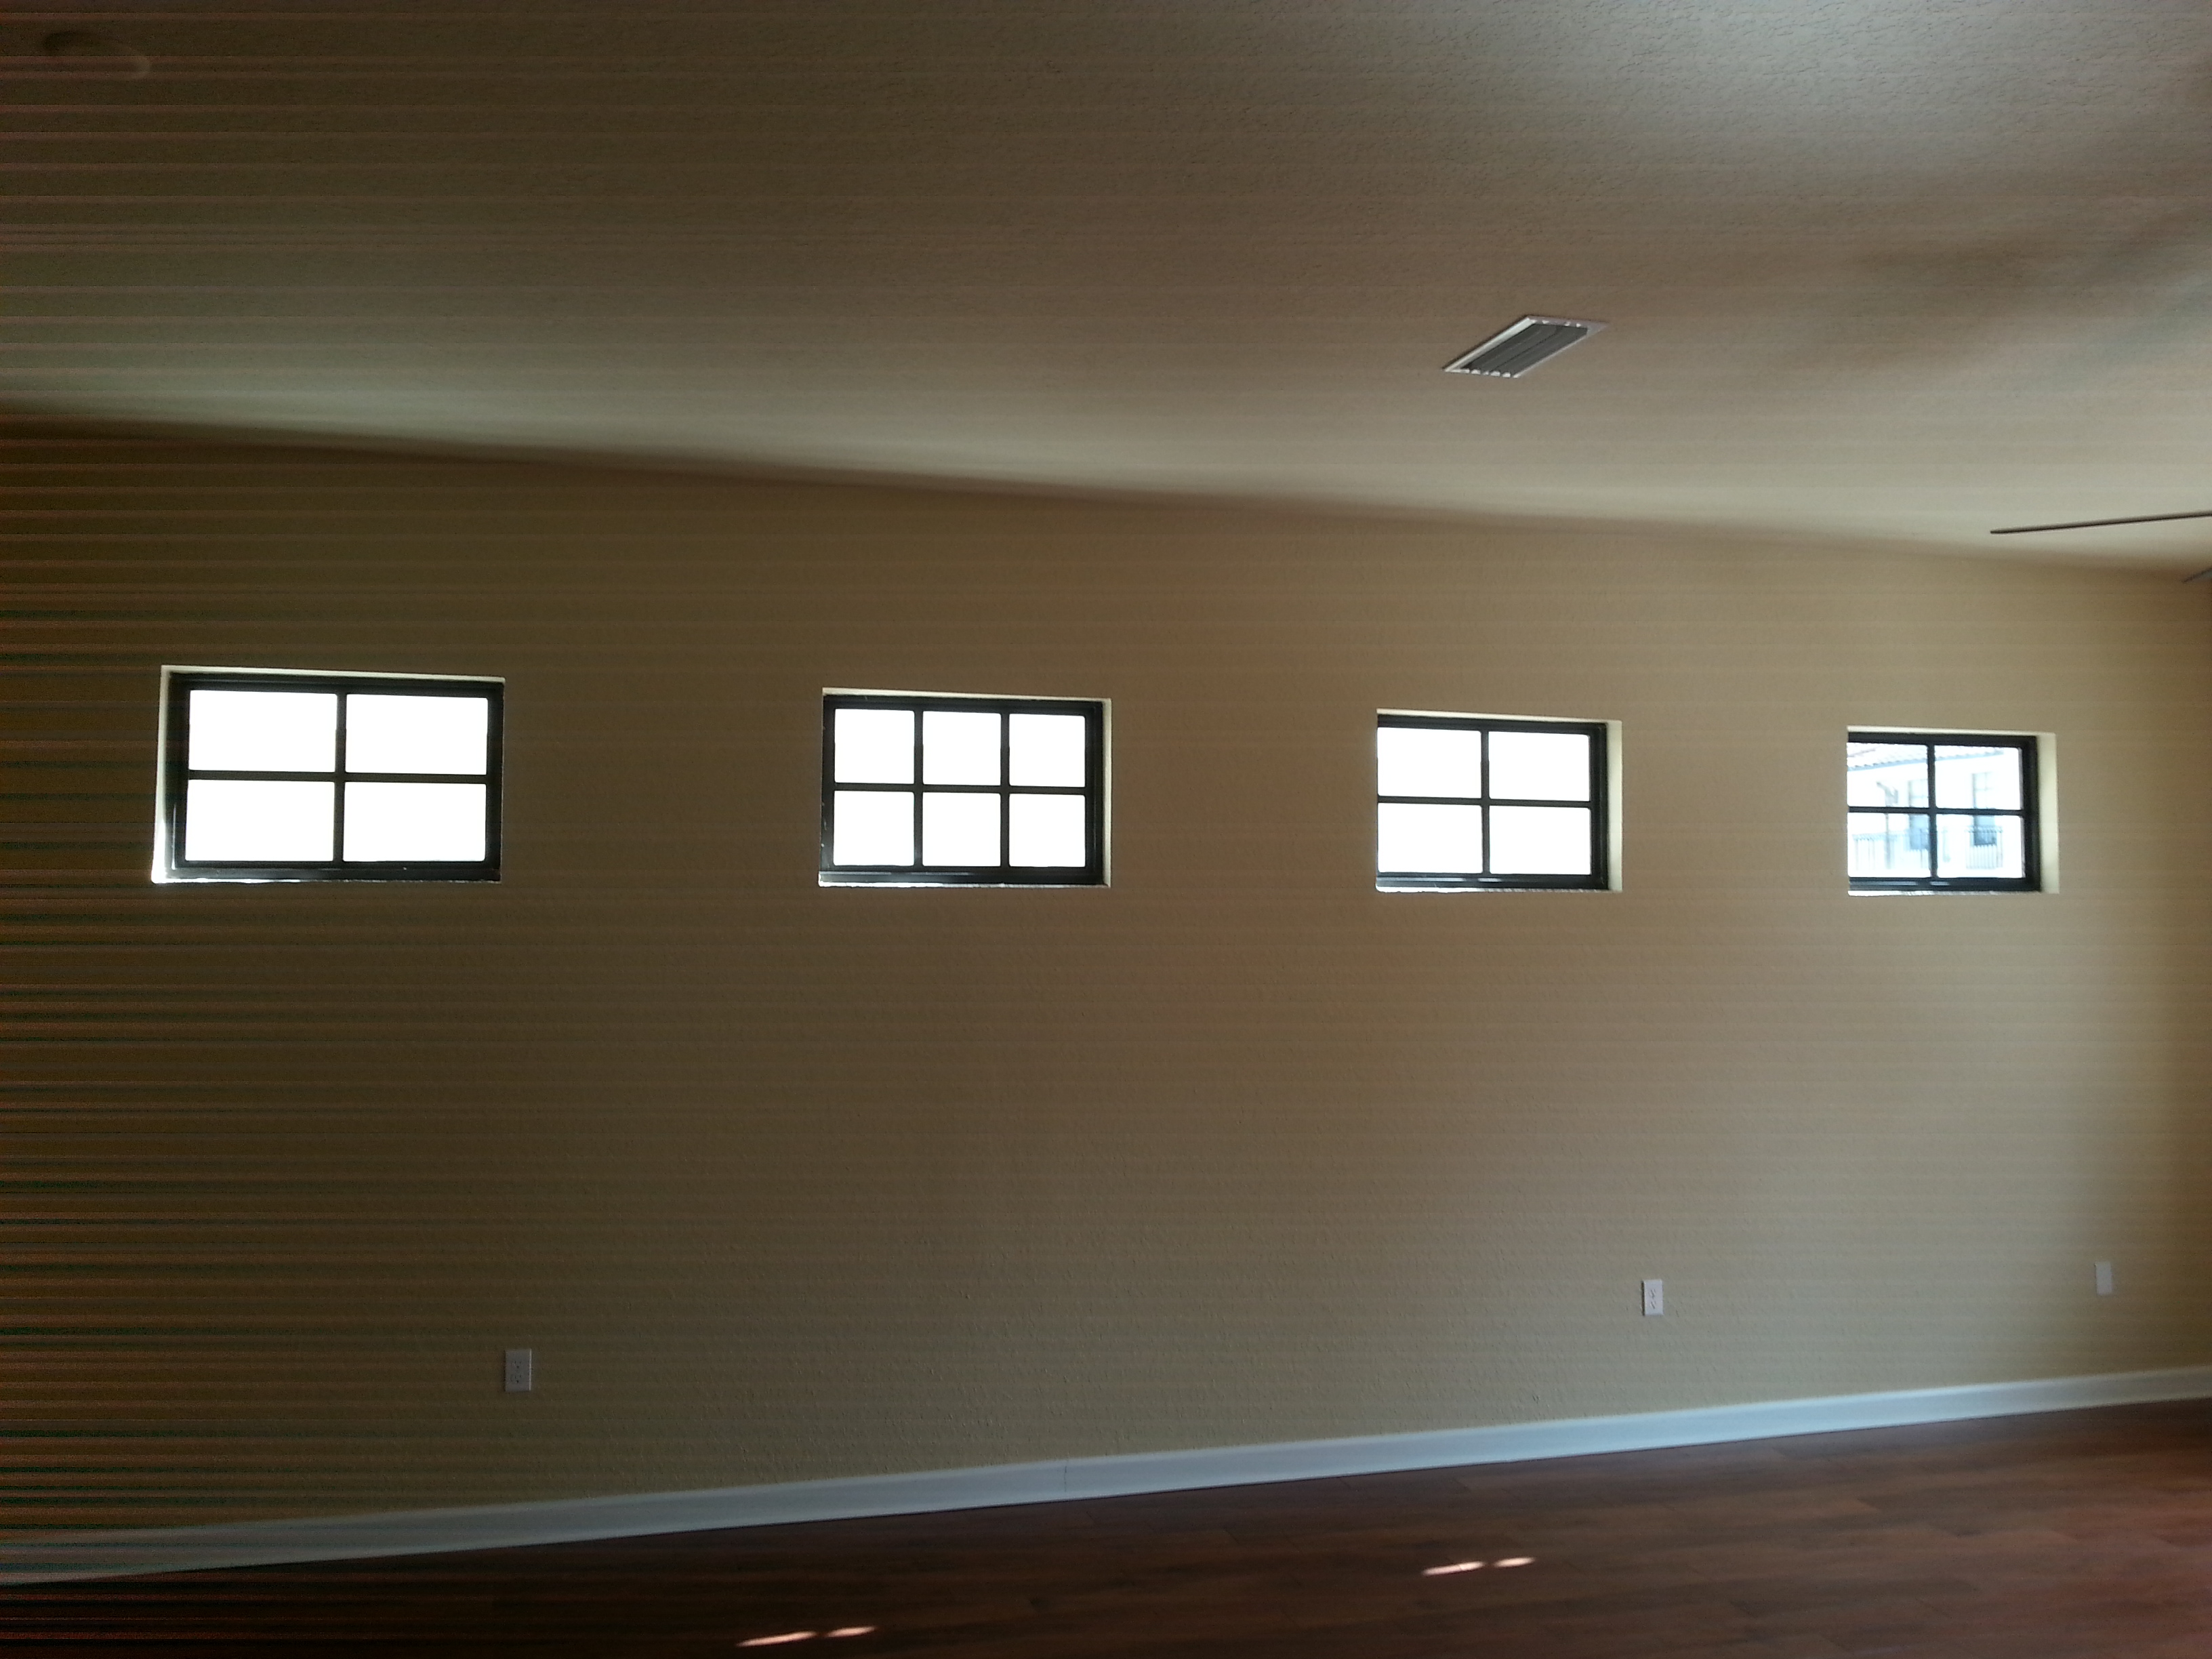 Interior Painting Contractor In Jacksonville Completes Job